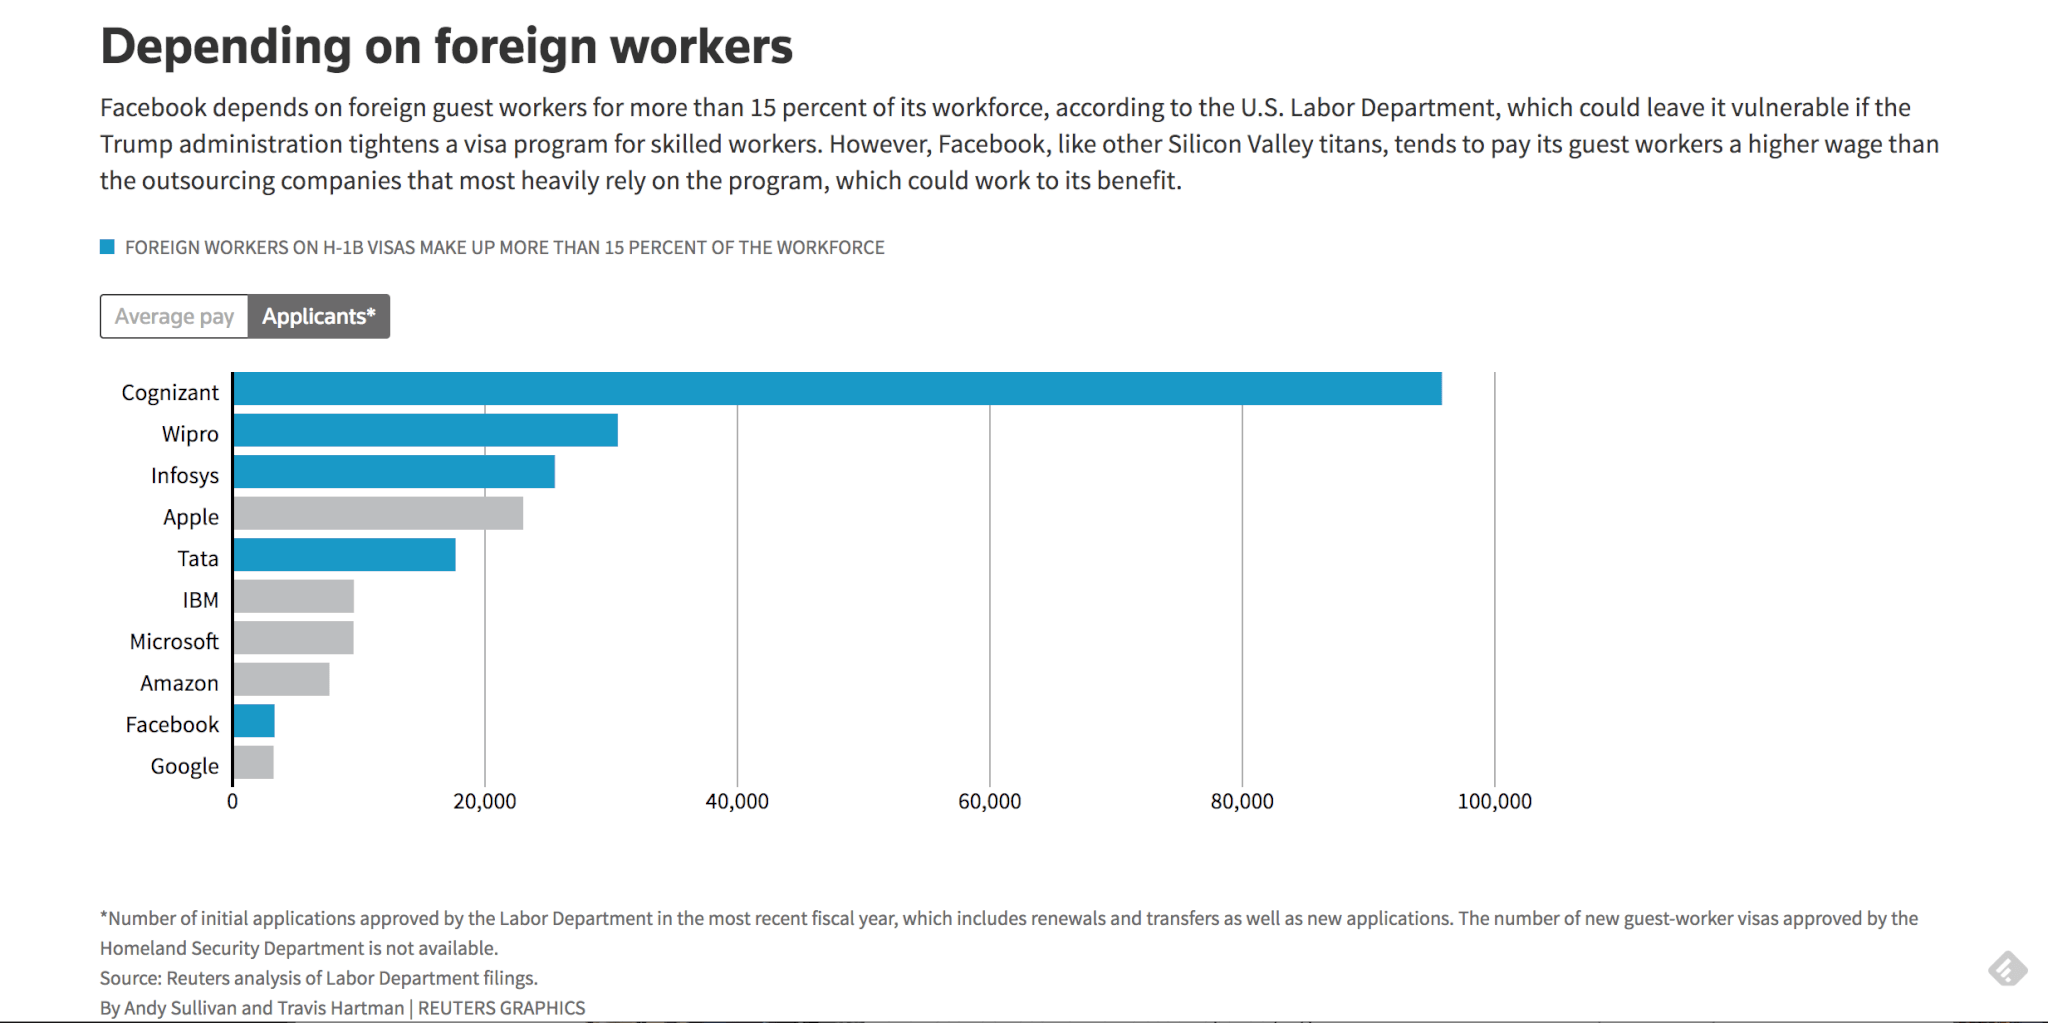 FOREIGN WORKERS ON H-1B VISAS MAKE UP MORE THAN 15 PERCENT OF THE WORKFORCE